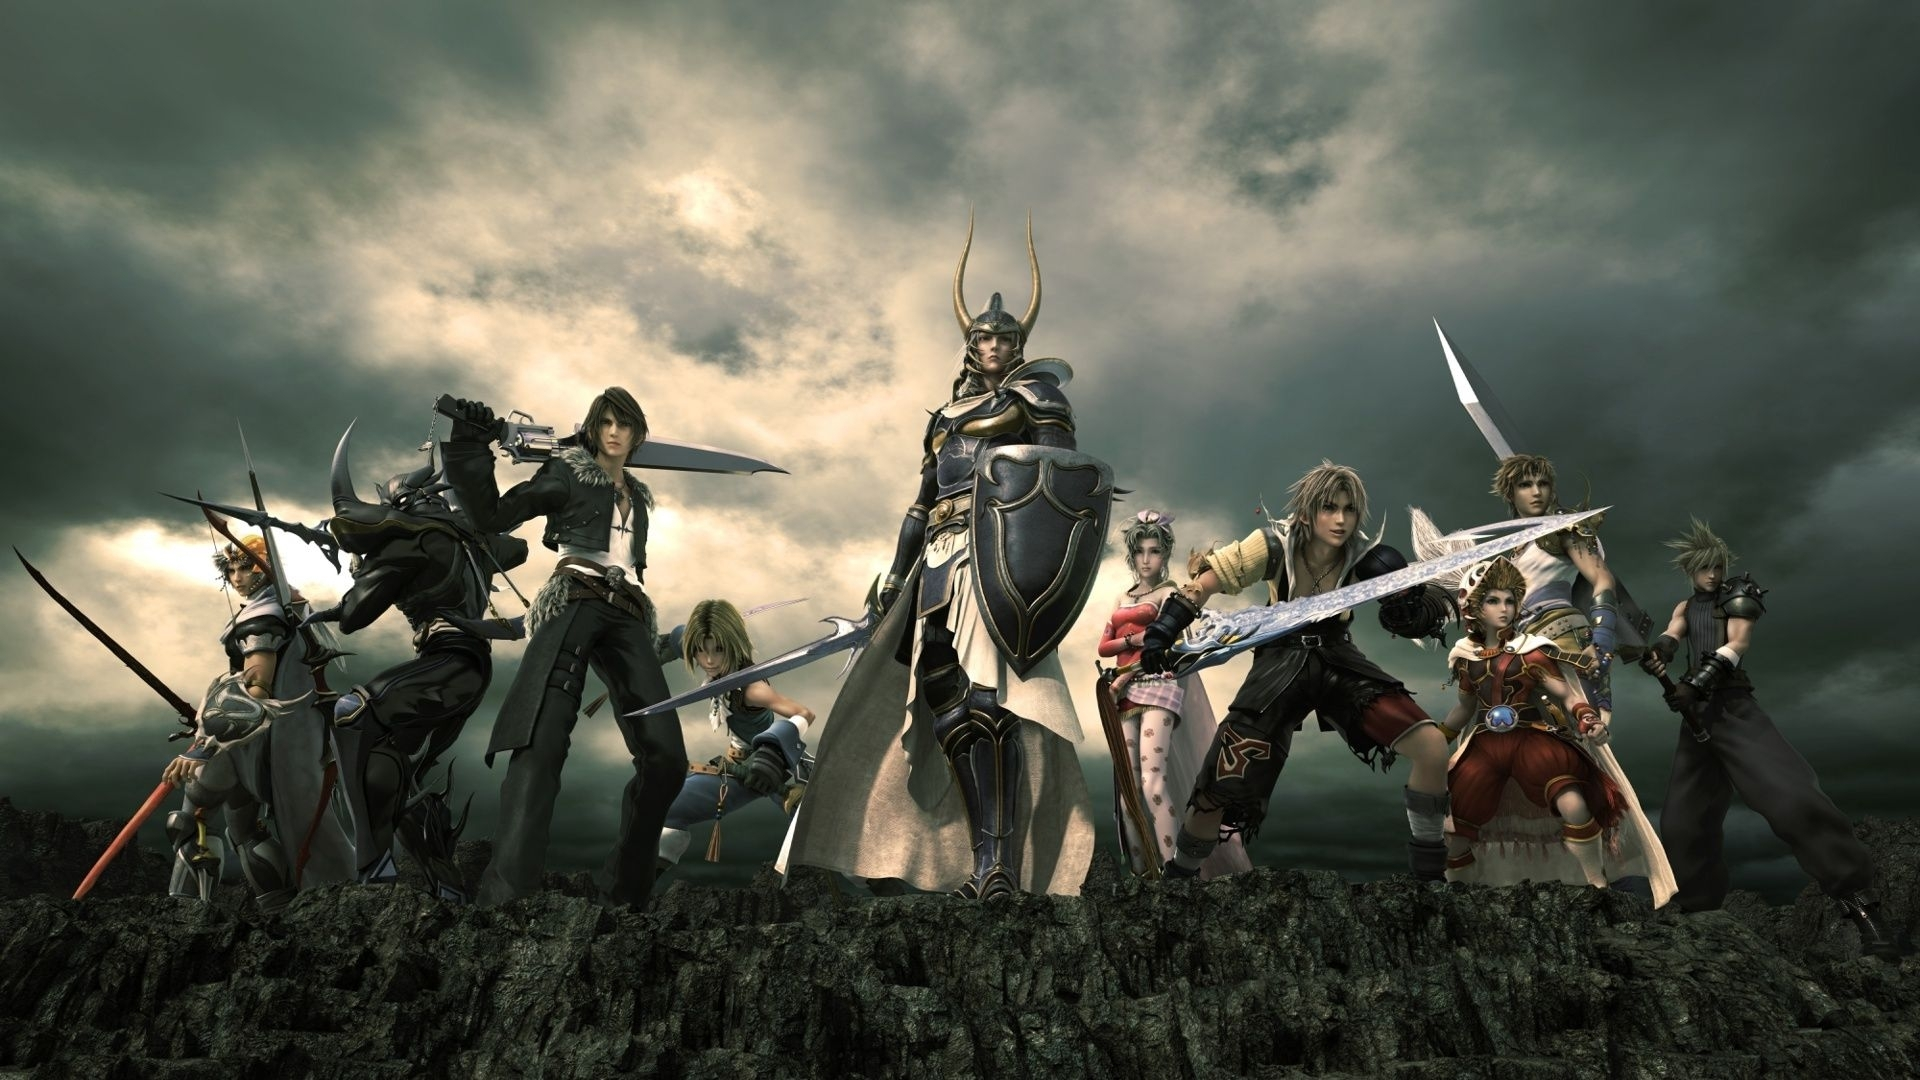 final fantasy hd 1920x1080 wallpapers 1920x1080 wallpapers pictures